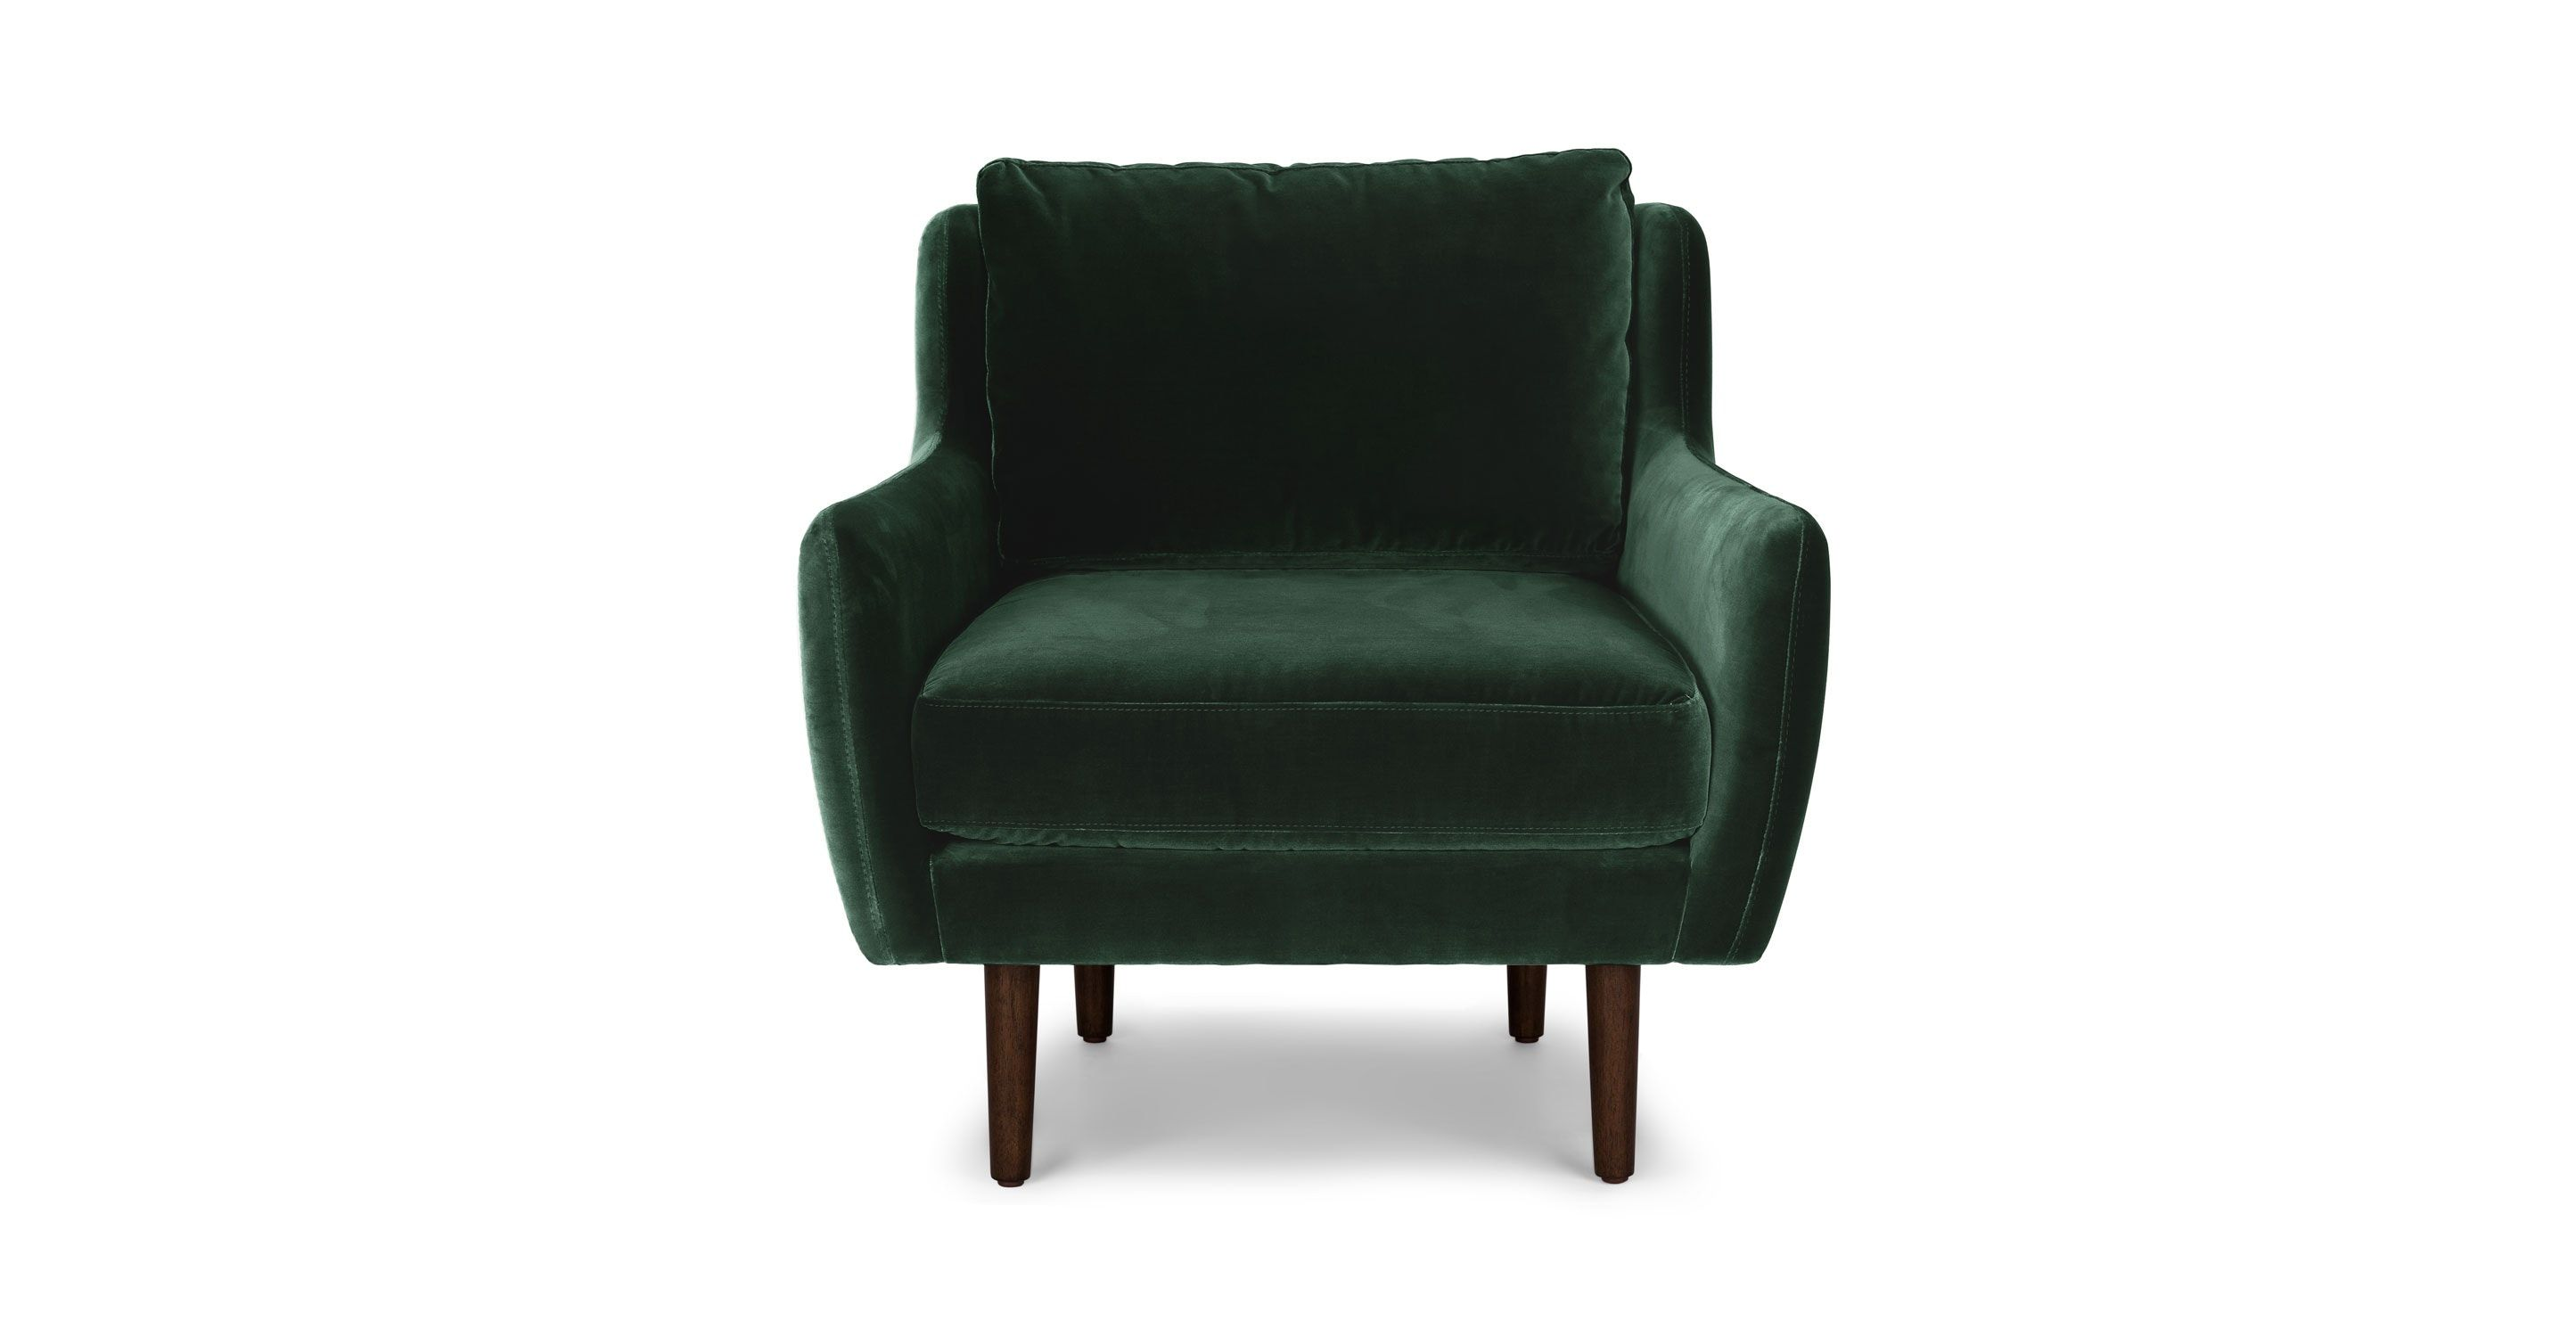 Dark Green Velvet Chair in Walnut Wood Legs | Article Matrix Modern ...